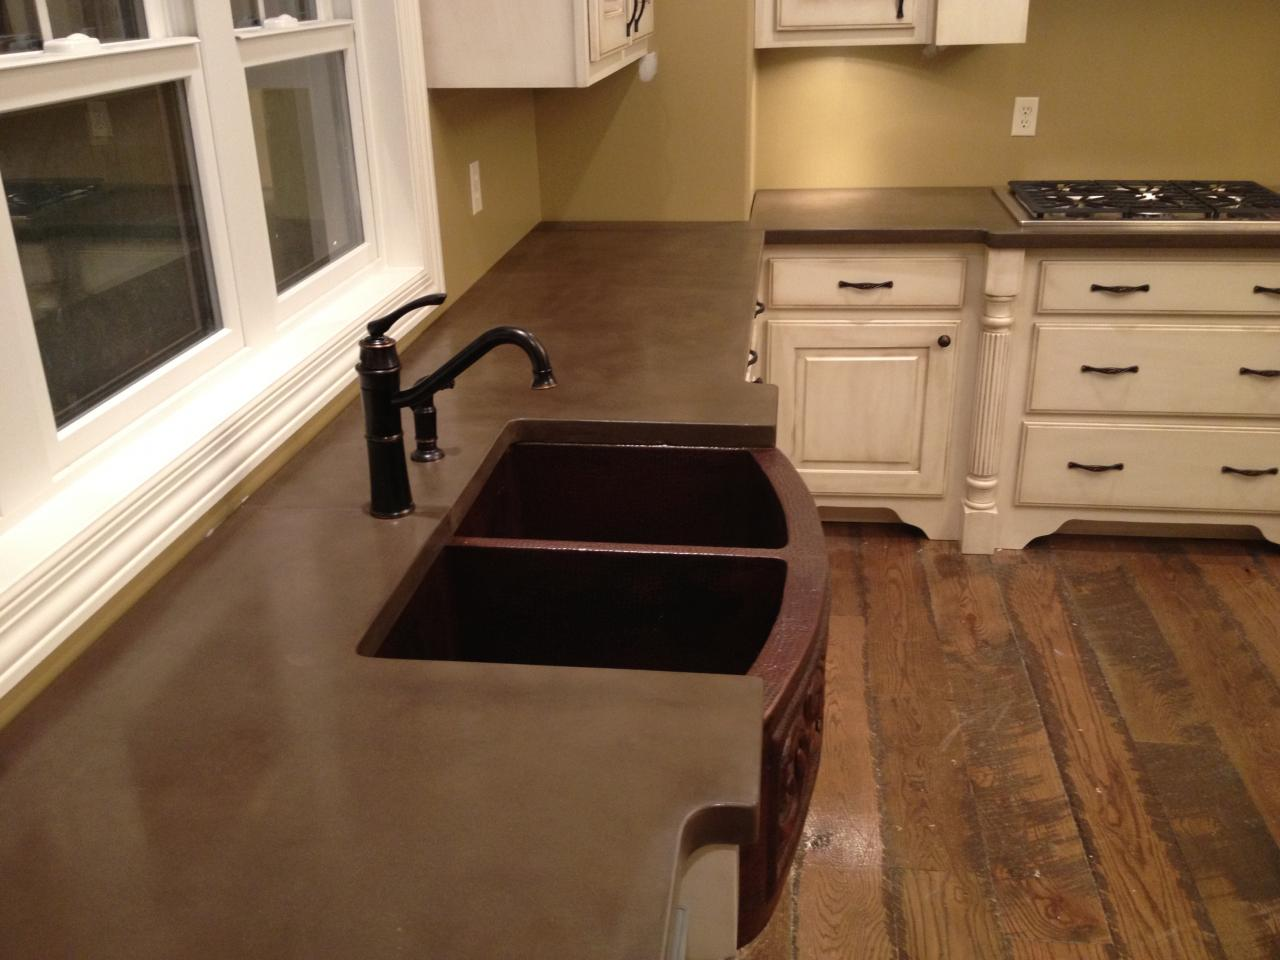 What Kind Of Concrete To Use For Countertops Burco Surface And Decor Llc Concrete Countertops Atlanta